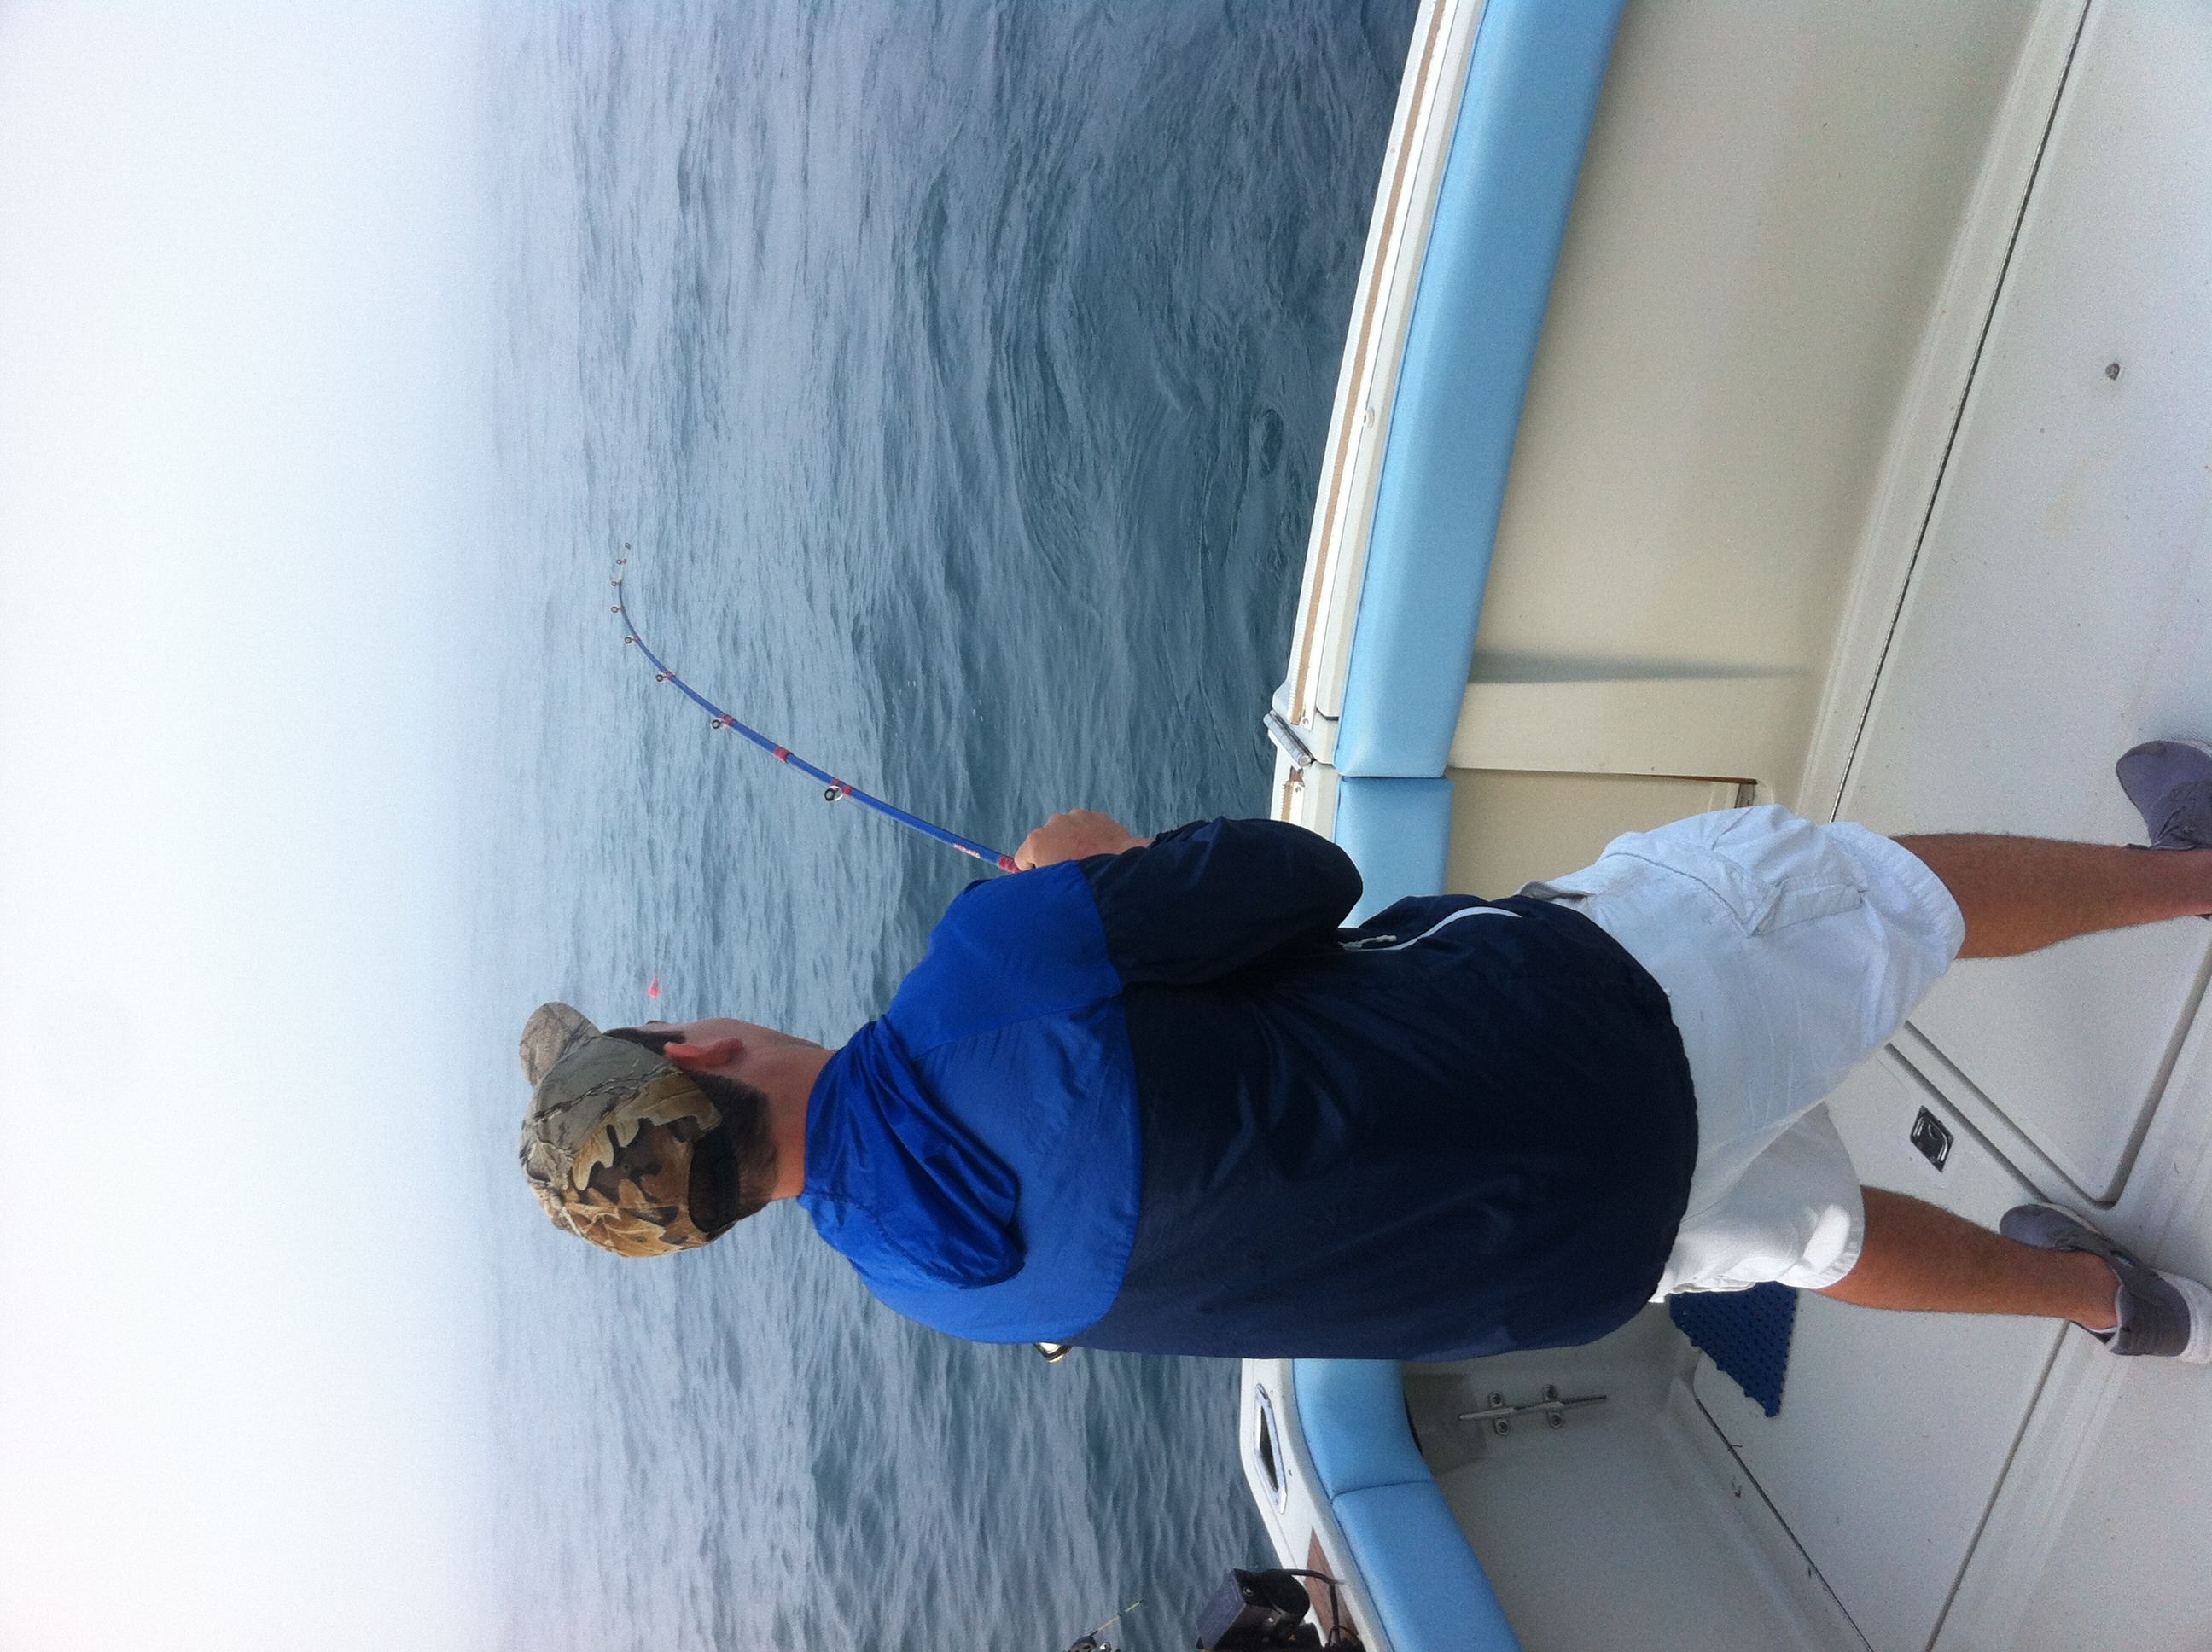 UnrulyCharterFishing_LakeMichiganSalmonFishing.19.jpg